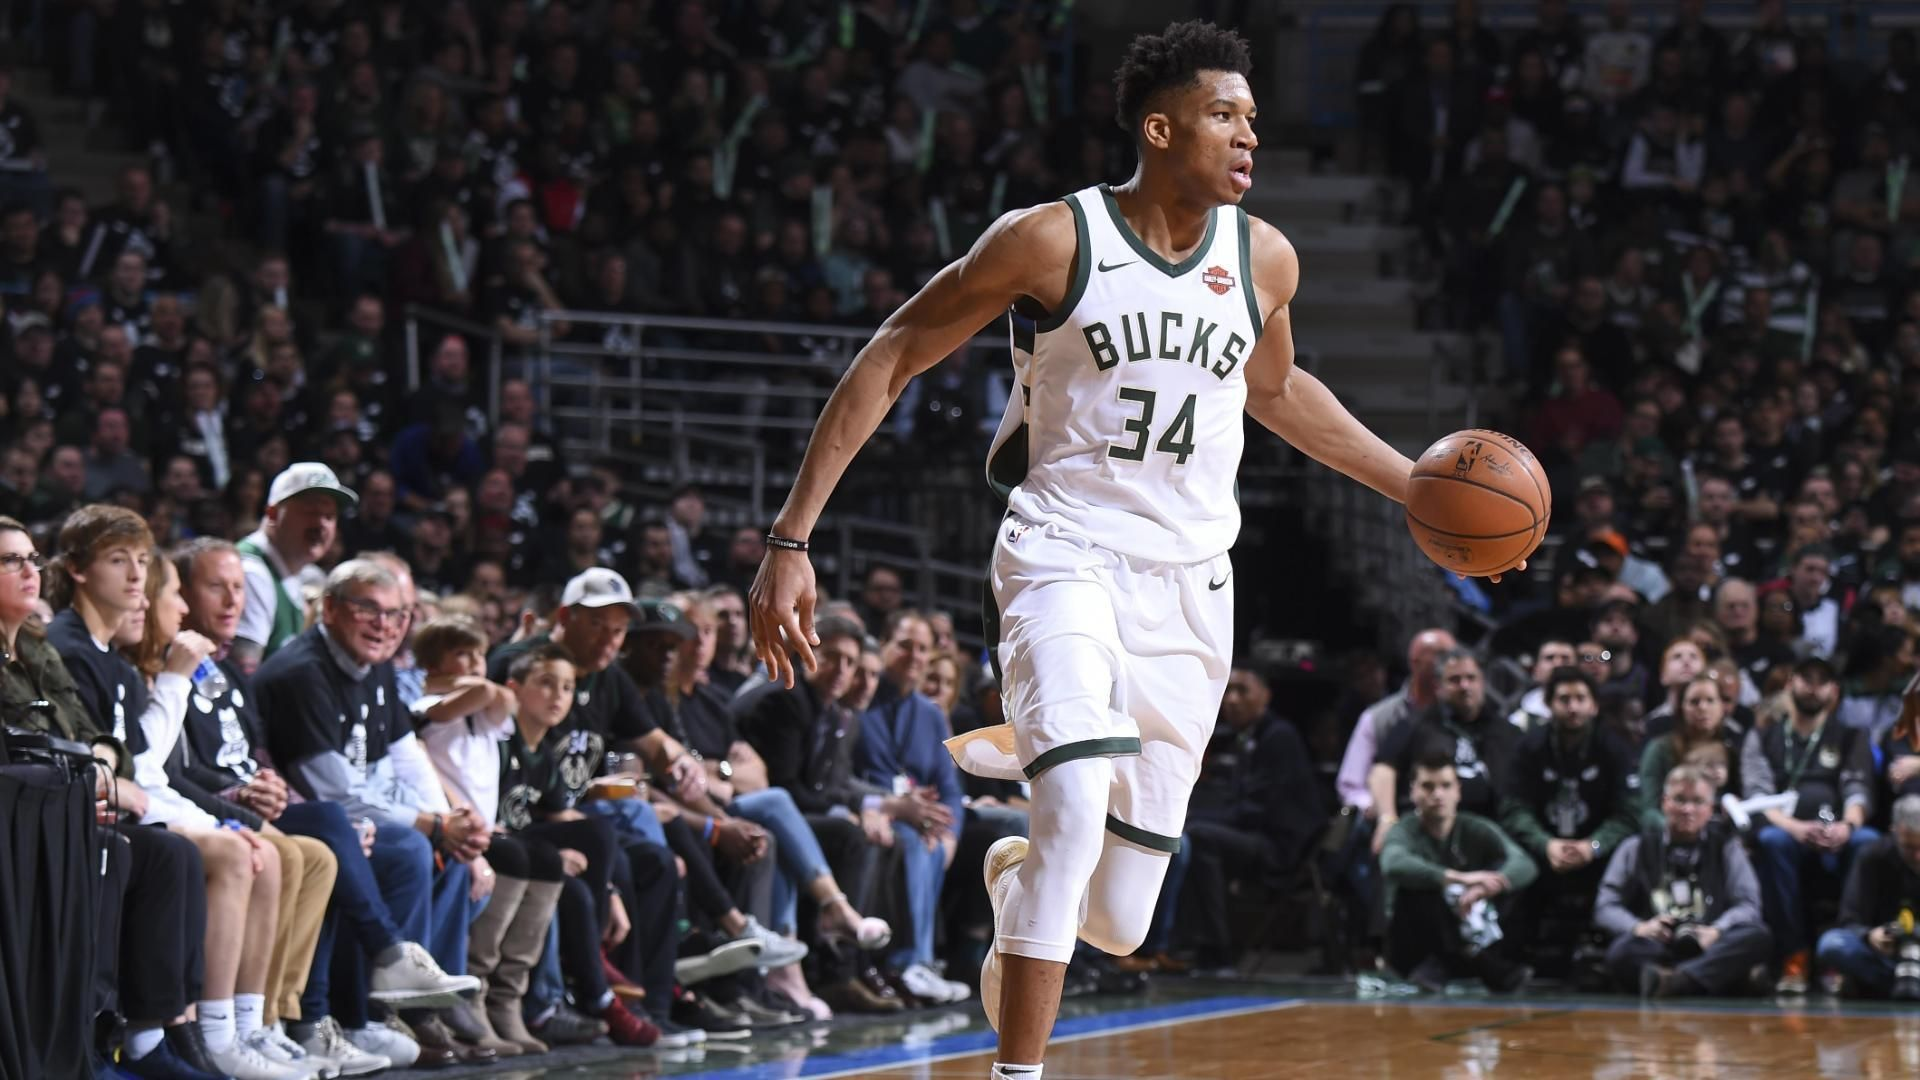 How the Bucks flipped the script on Celtics